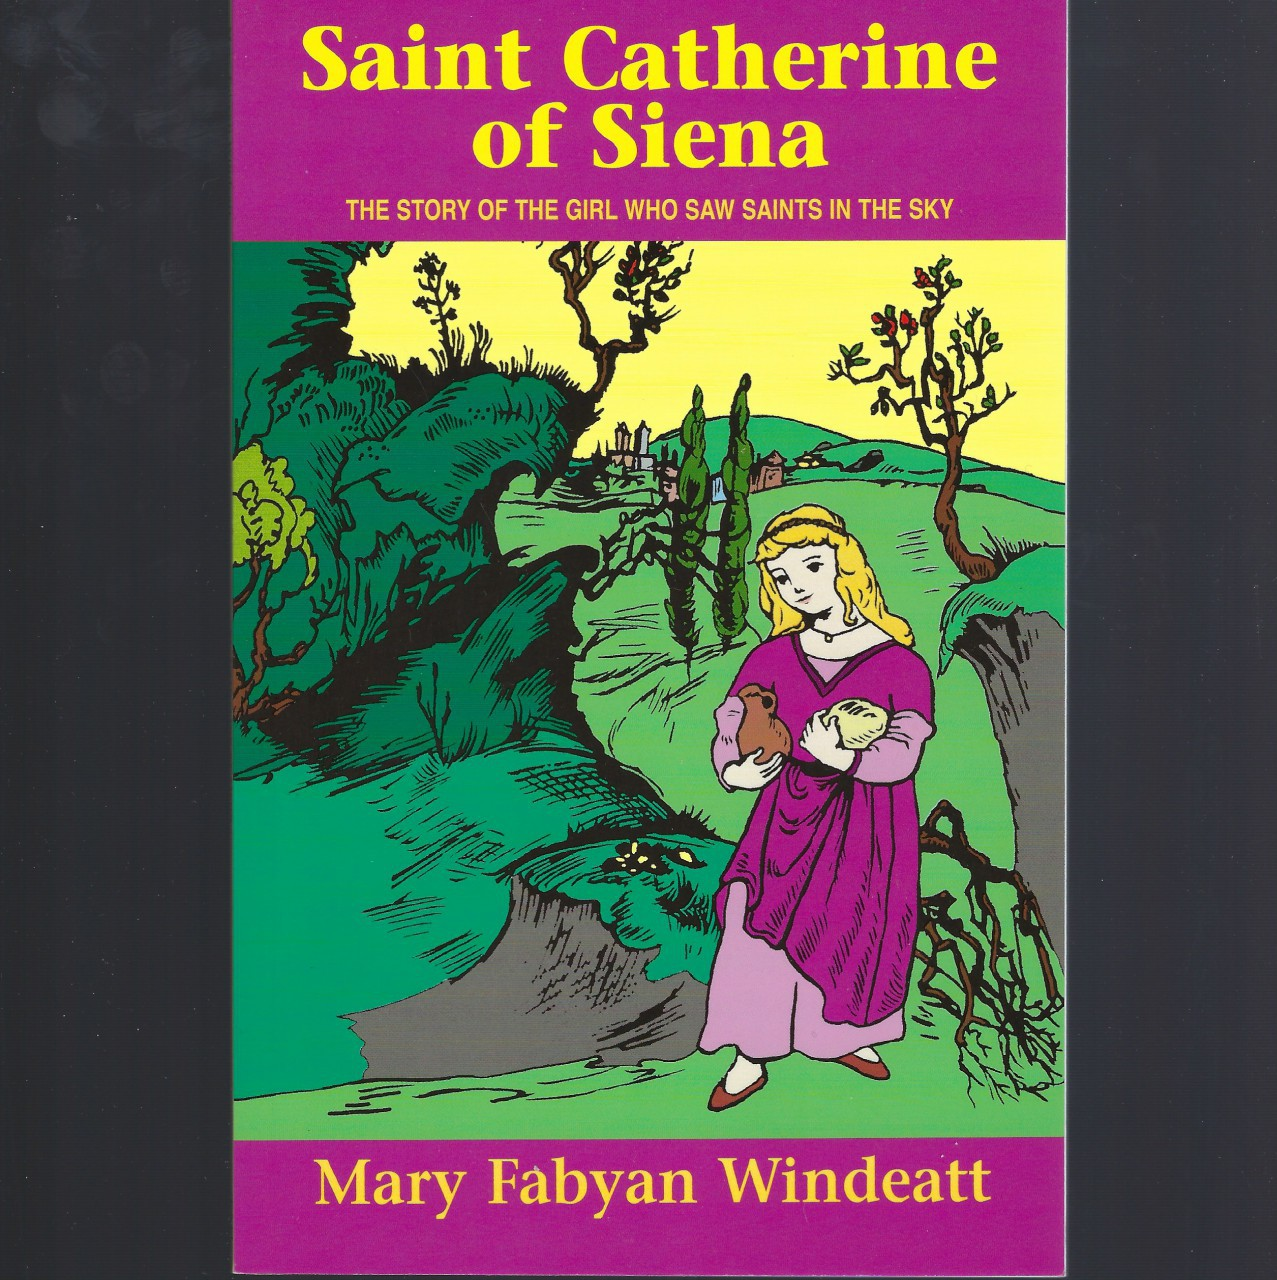 Saint Catherine of Siena The Story of the Girl Who Saw Saints in the Sky, Mary Fabyan Windeatt